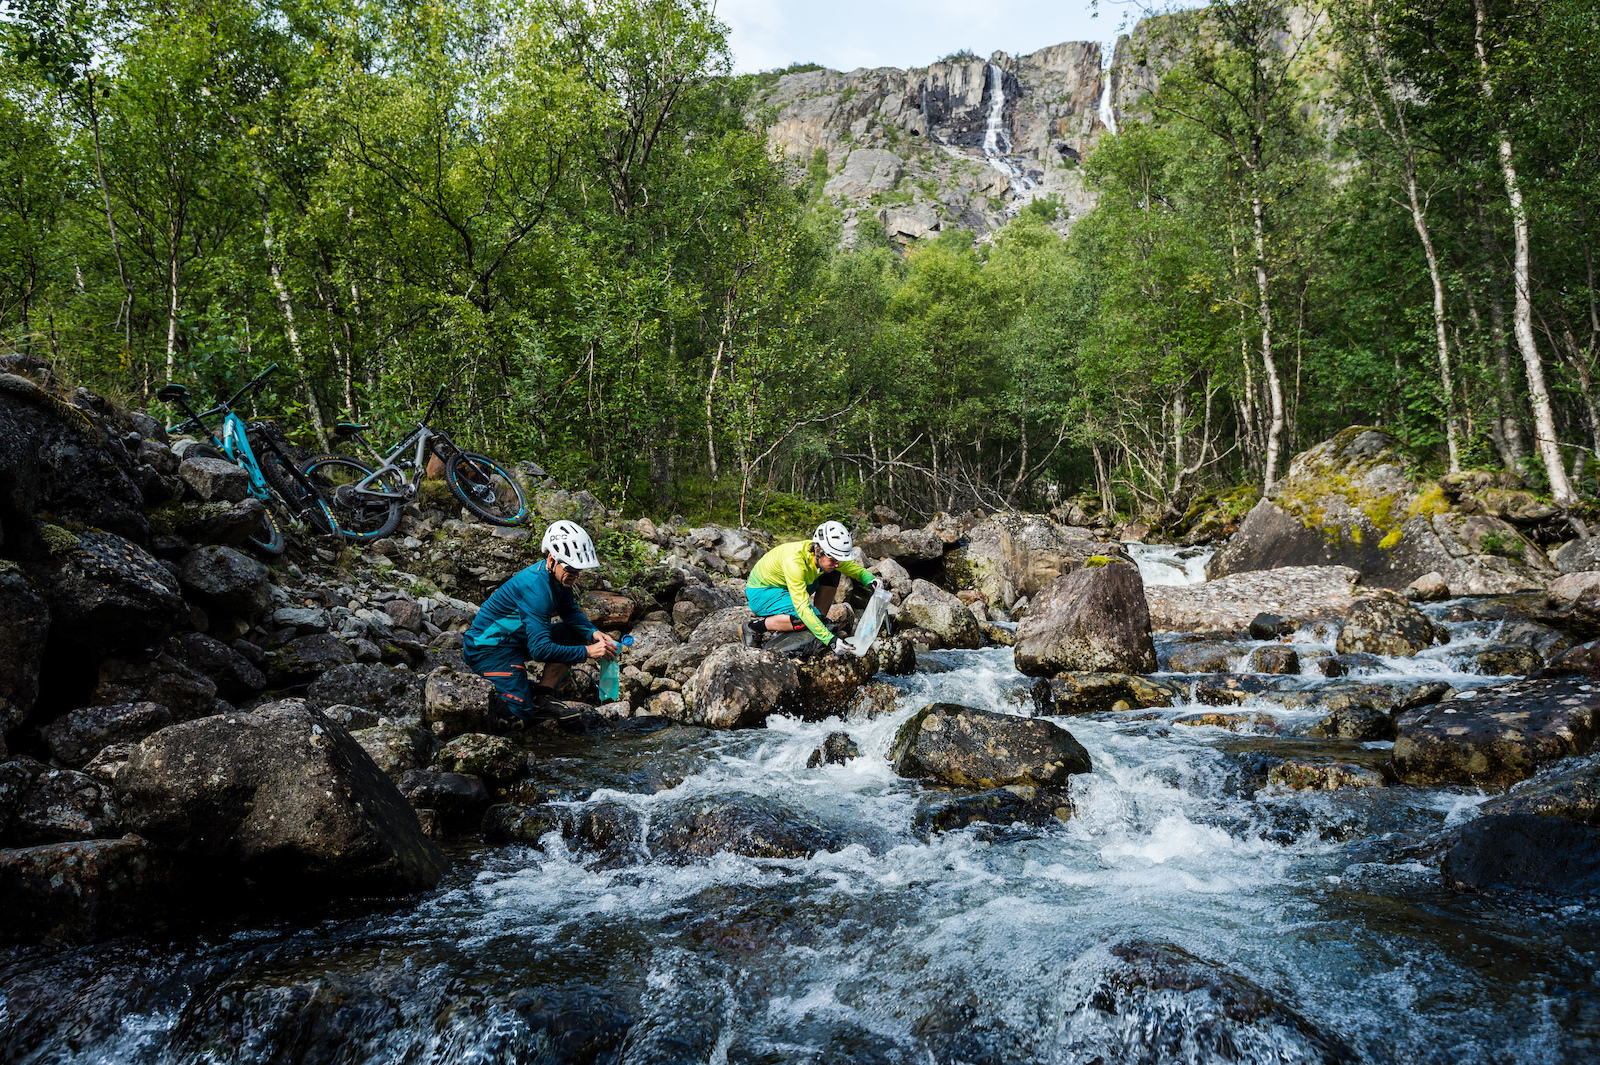 Mikael af Ekenstam and Joey Schulser refilling their water bottles near Rombak Norway.